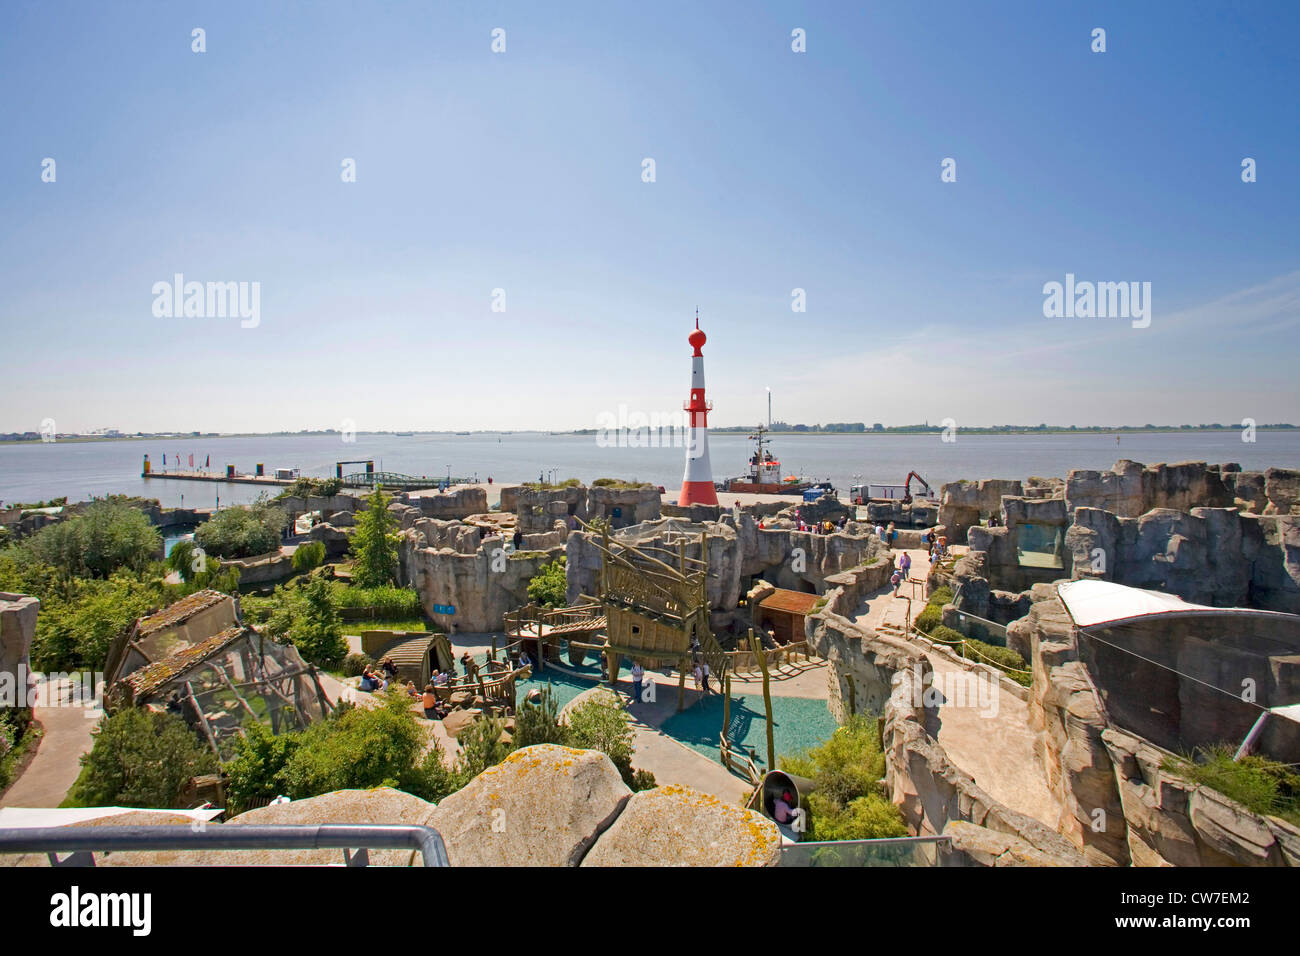 the 'Zoo at the sea' at the mouth of the Weser with the lighthouse 'Bremerhaven Unterfeuer', Germany, Freie Hansestadt Stock Photo